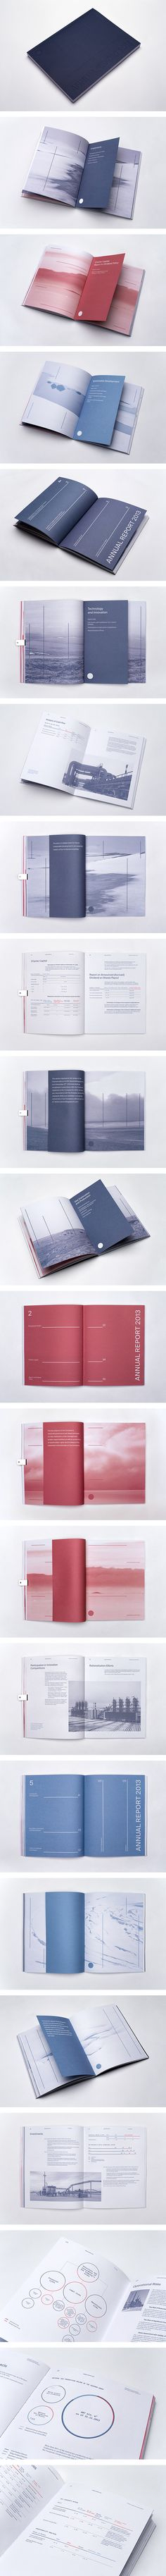 SNGP Annual Report by Ermolaev Bureau.I love the cut of page for the report layout. Editorial Design Layouts, Magazine Layout Design, Book Design Layout, Print Layout, Design Brochure, Booklet Design, Design Poster, Print Design, Boutique Design